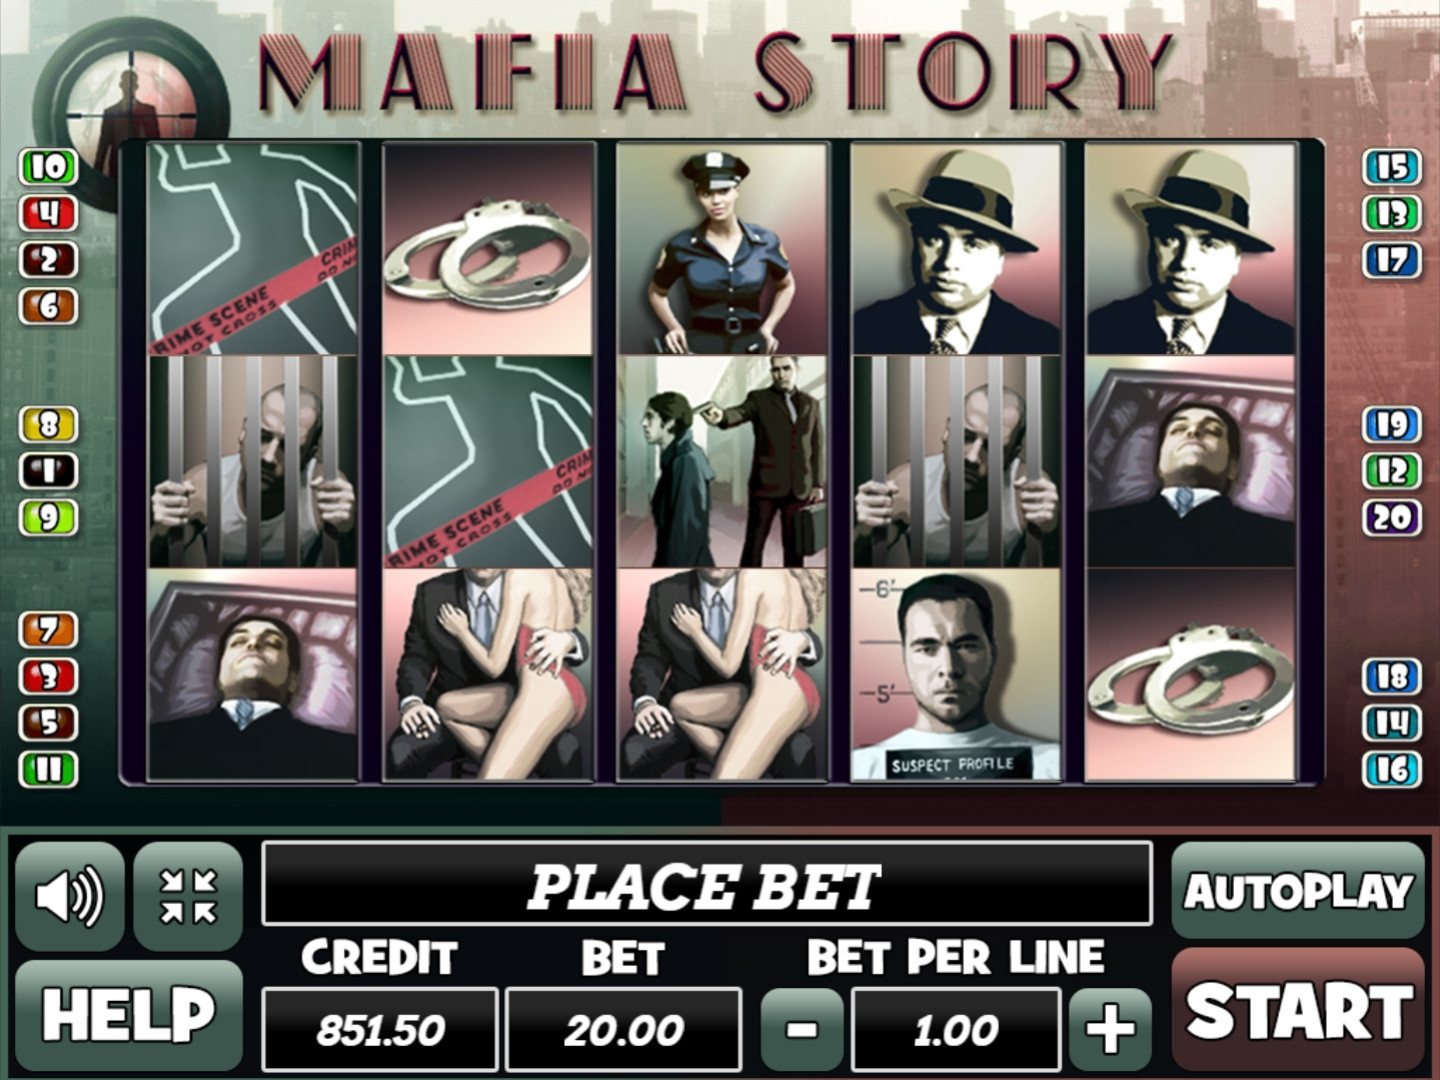 Mafia Story (Mafia Story) from category Slots